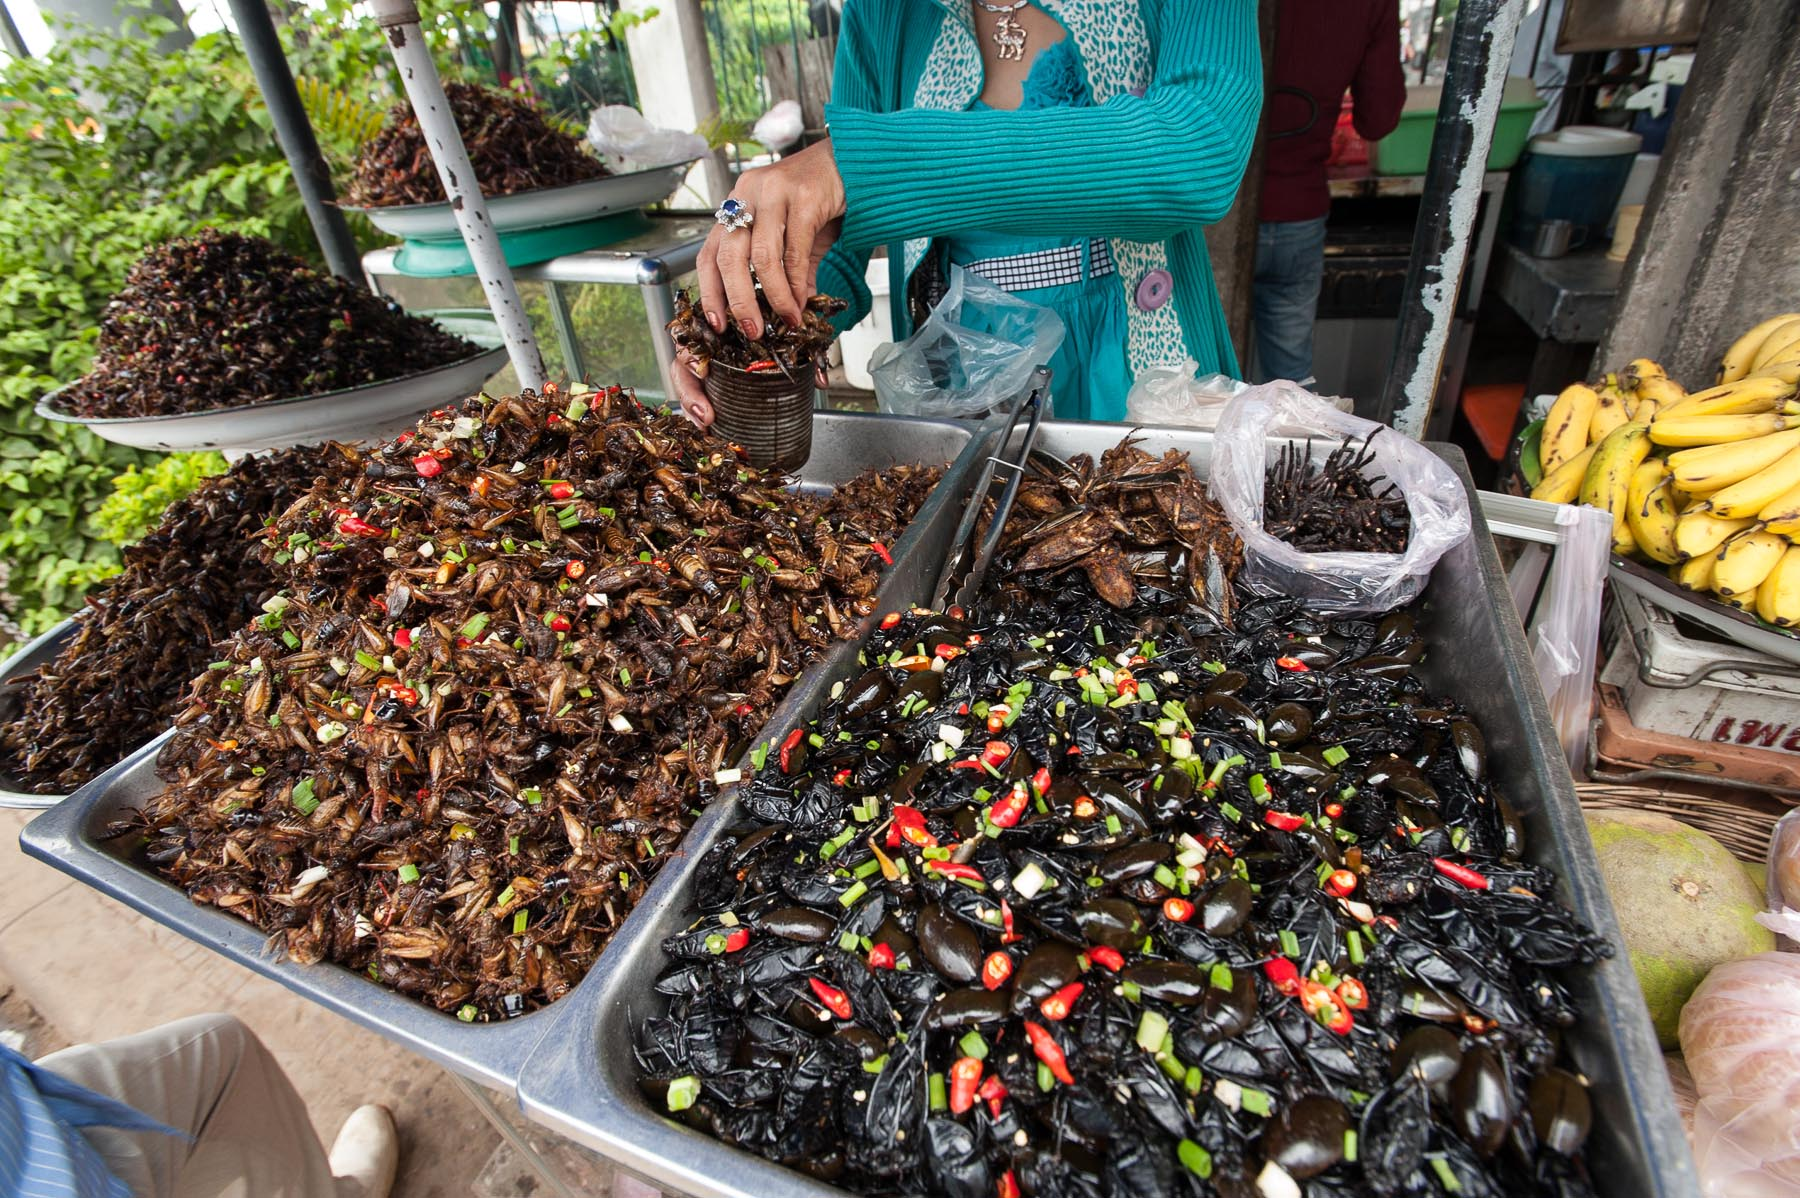 Edible cockroaches and trantulas at open market, Pursat Cambodia.